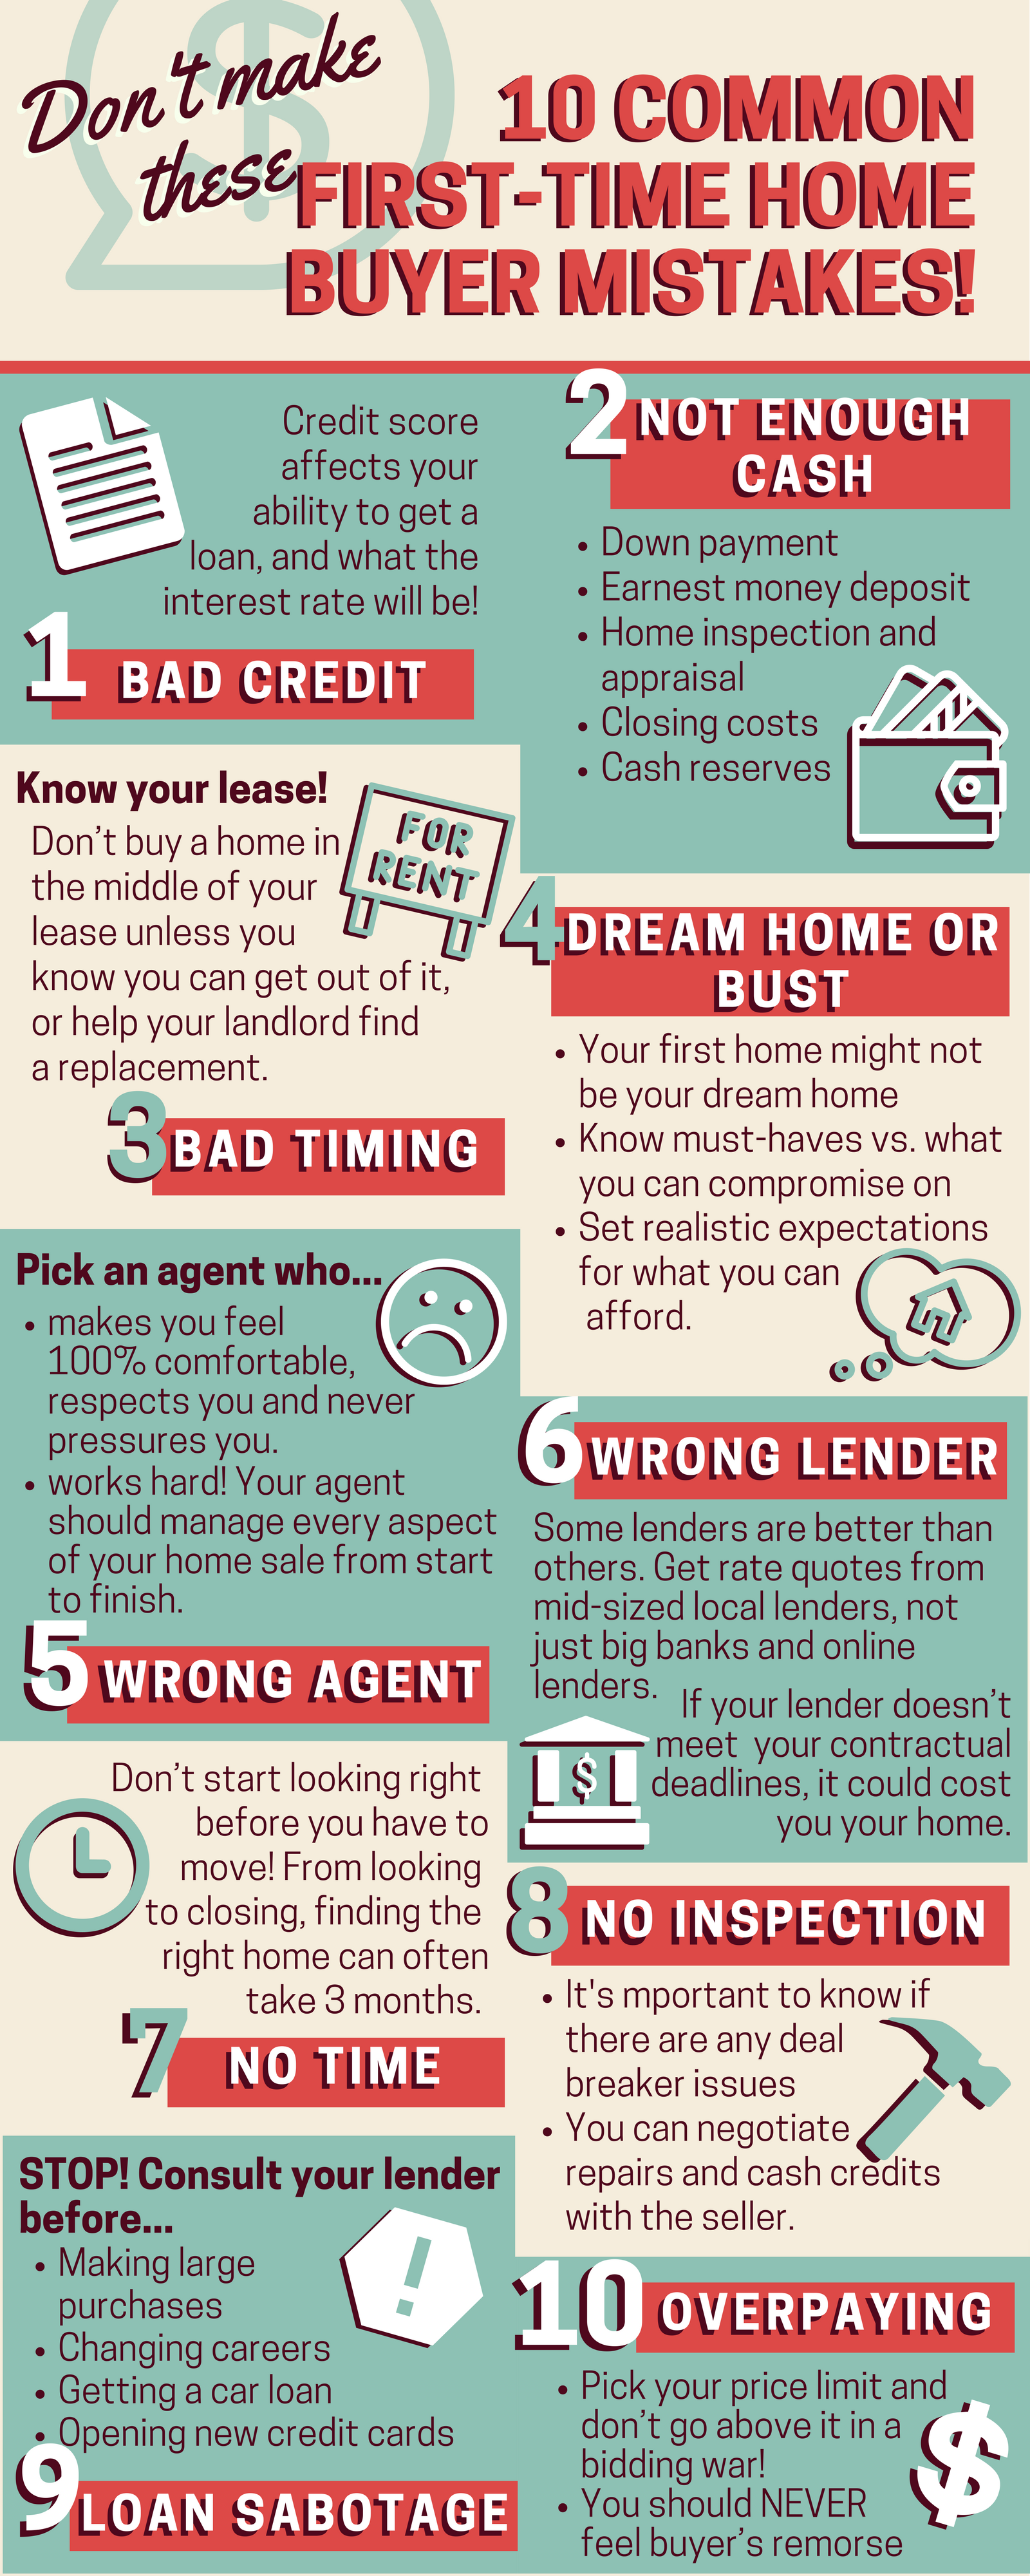 Don't make these 10 first time home buyer mistakes!